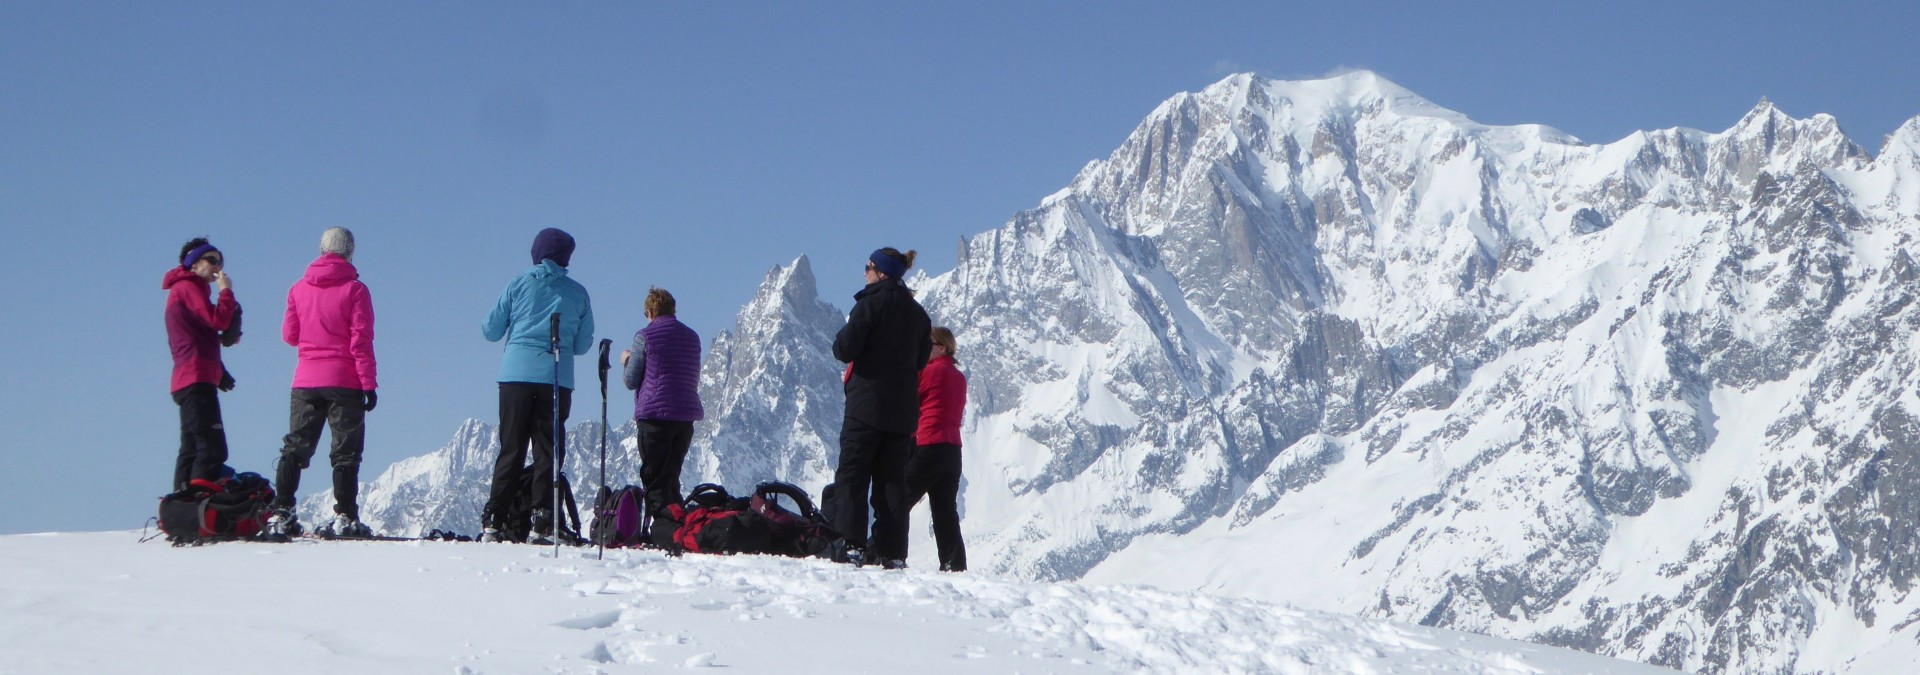 Chamonix Snow Shoe Adventure